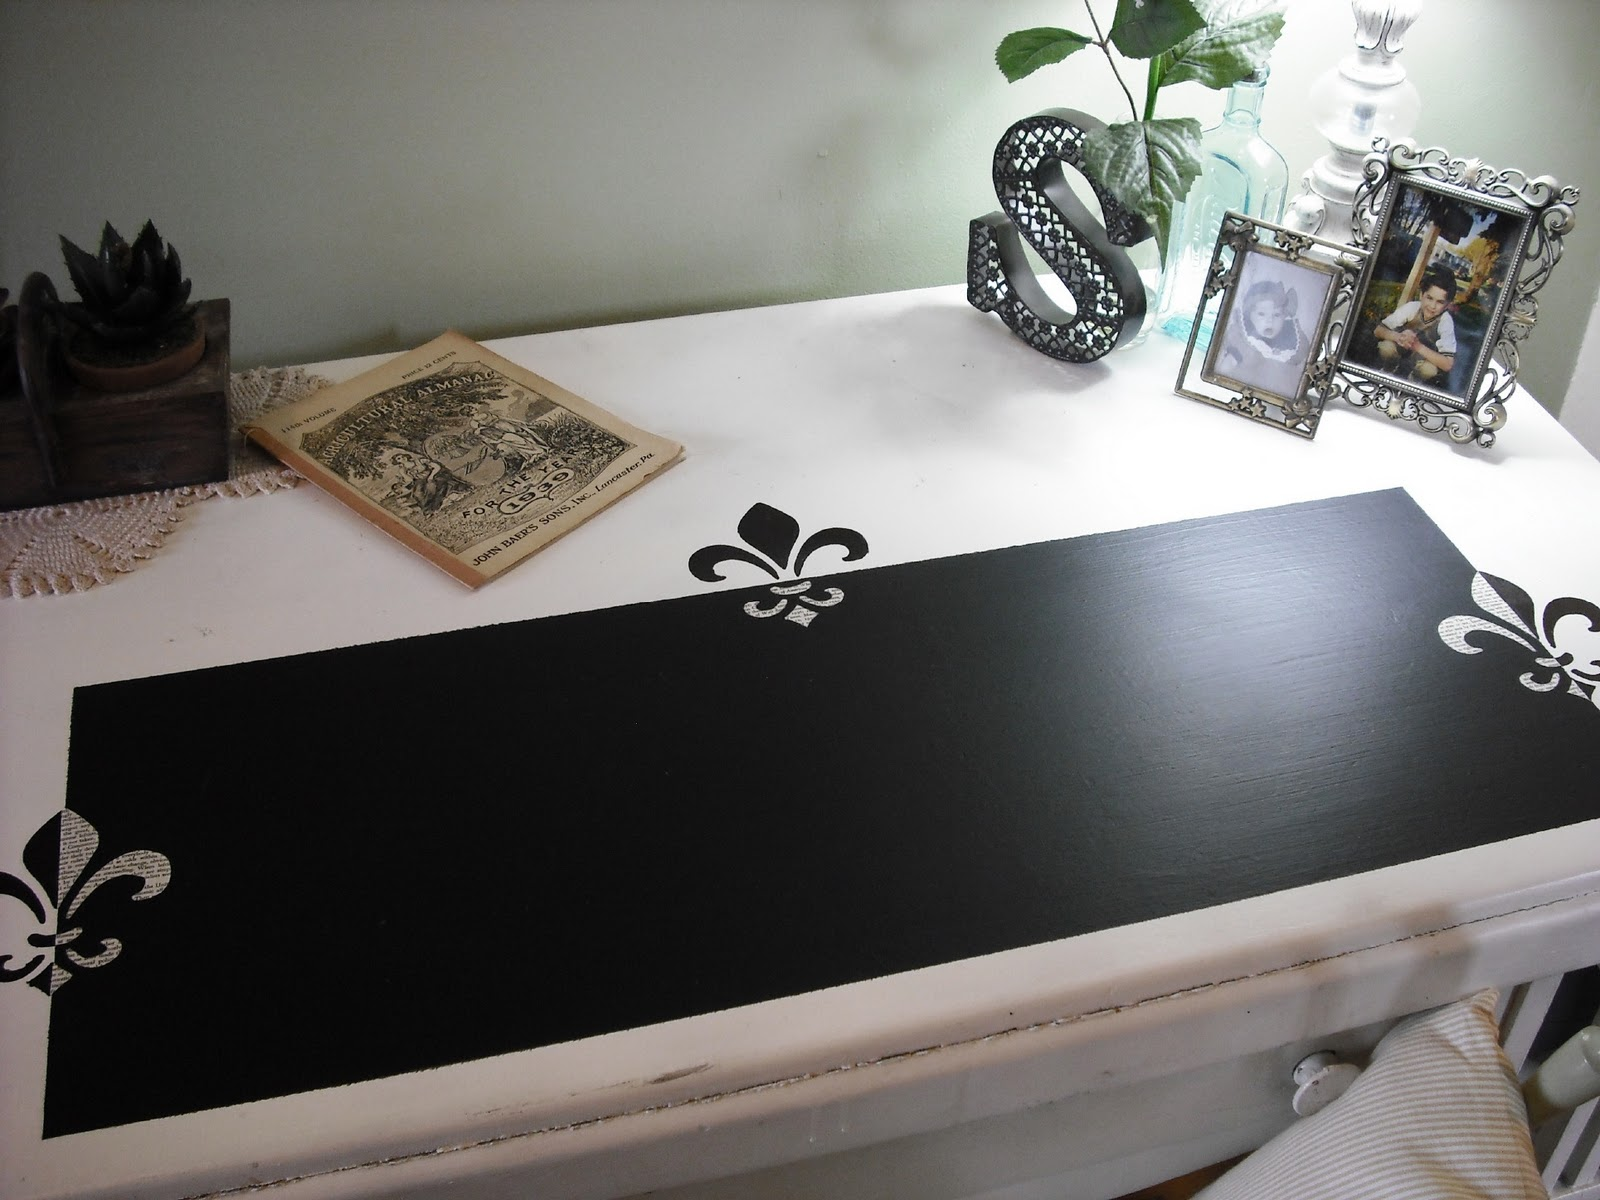 Boiserie & c.: pittura lavagna   chalk board paint: 27 nuove idee